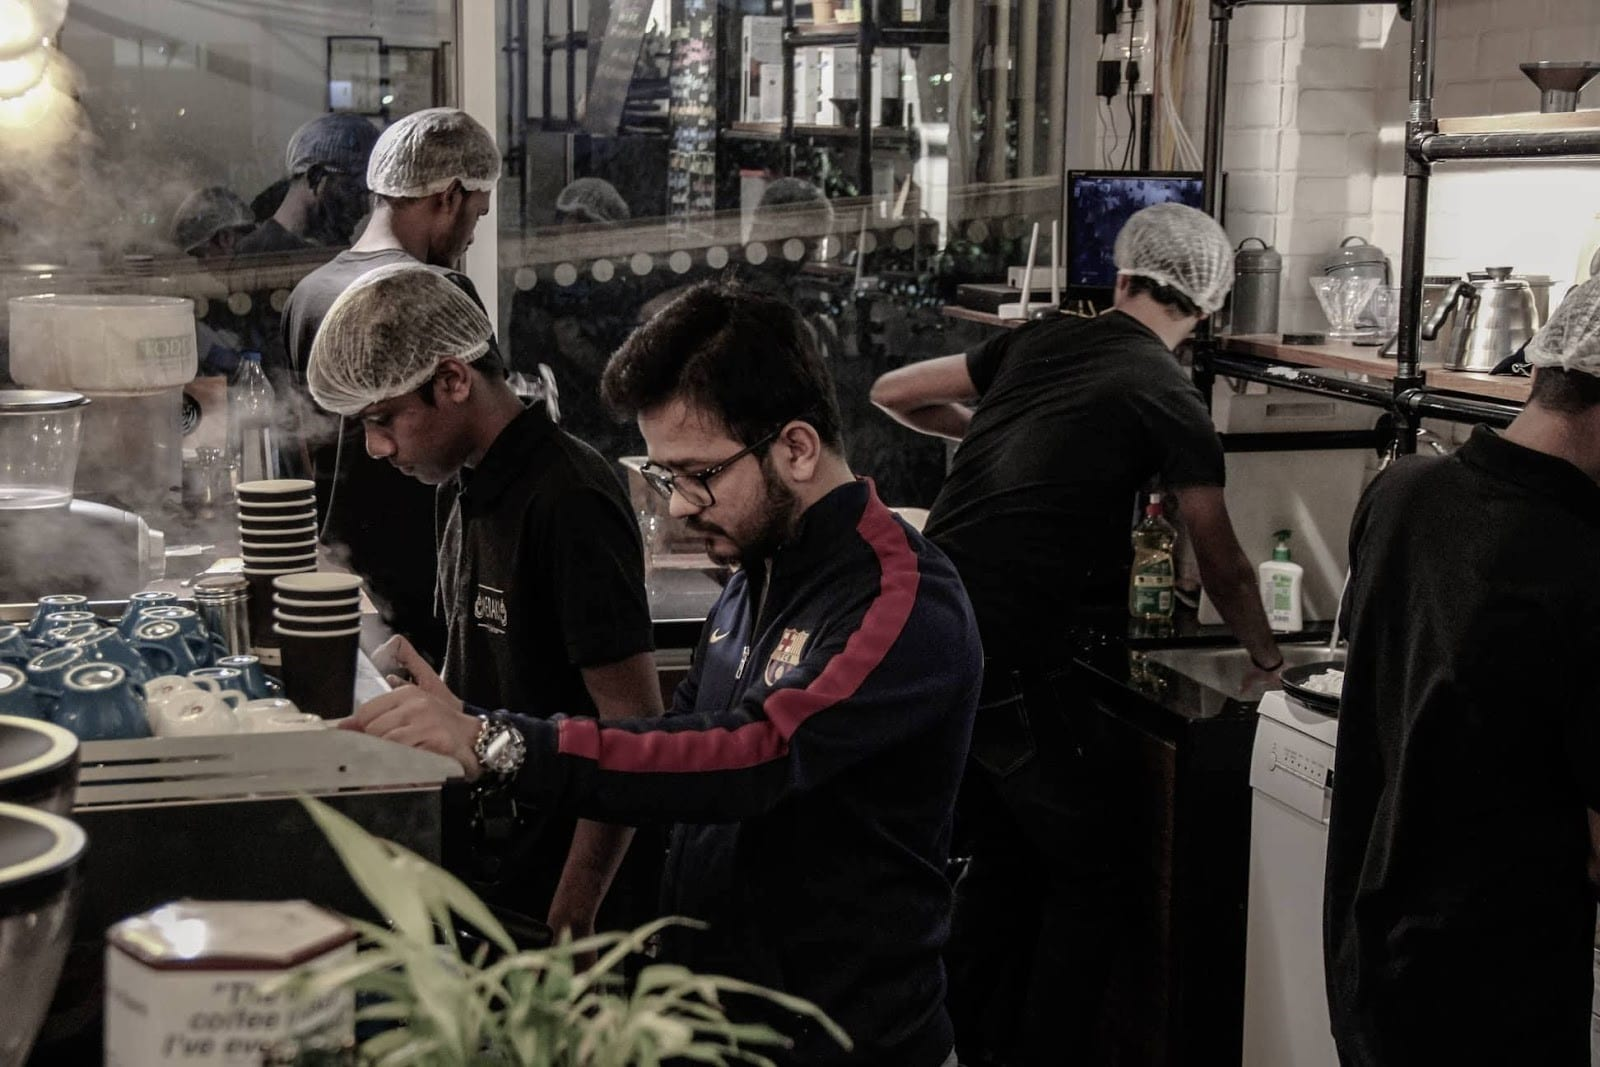 some baristas from india brew coffee for clients